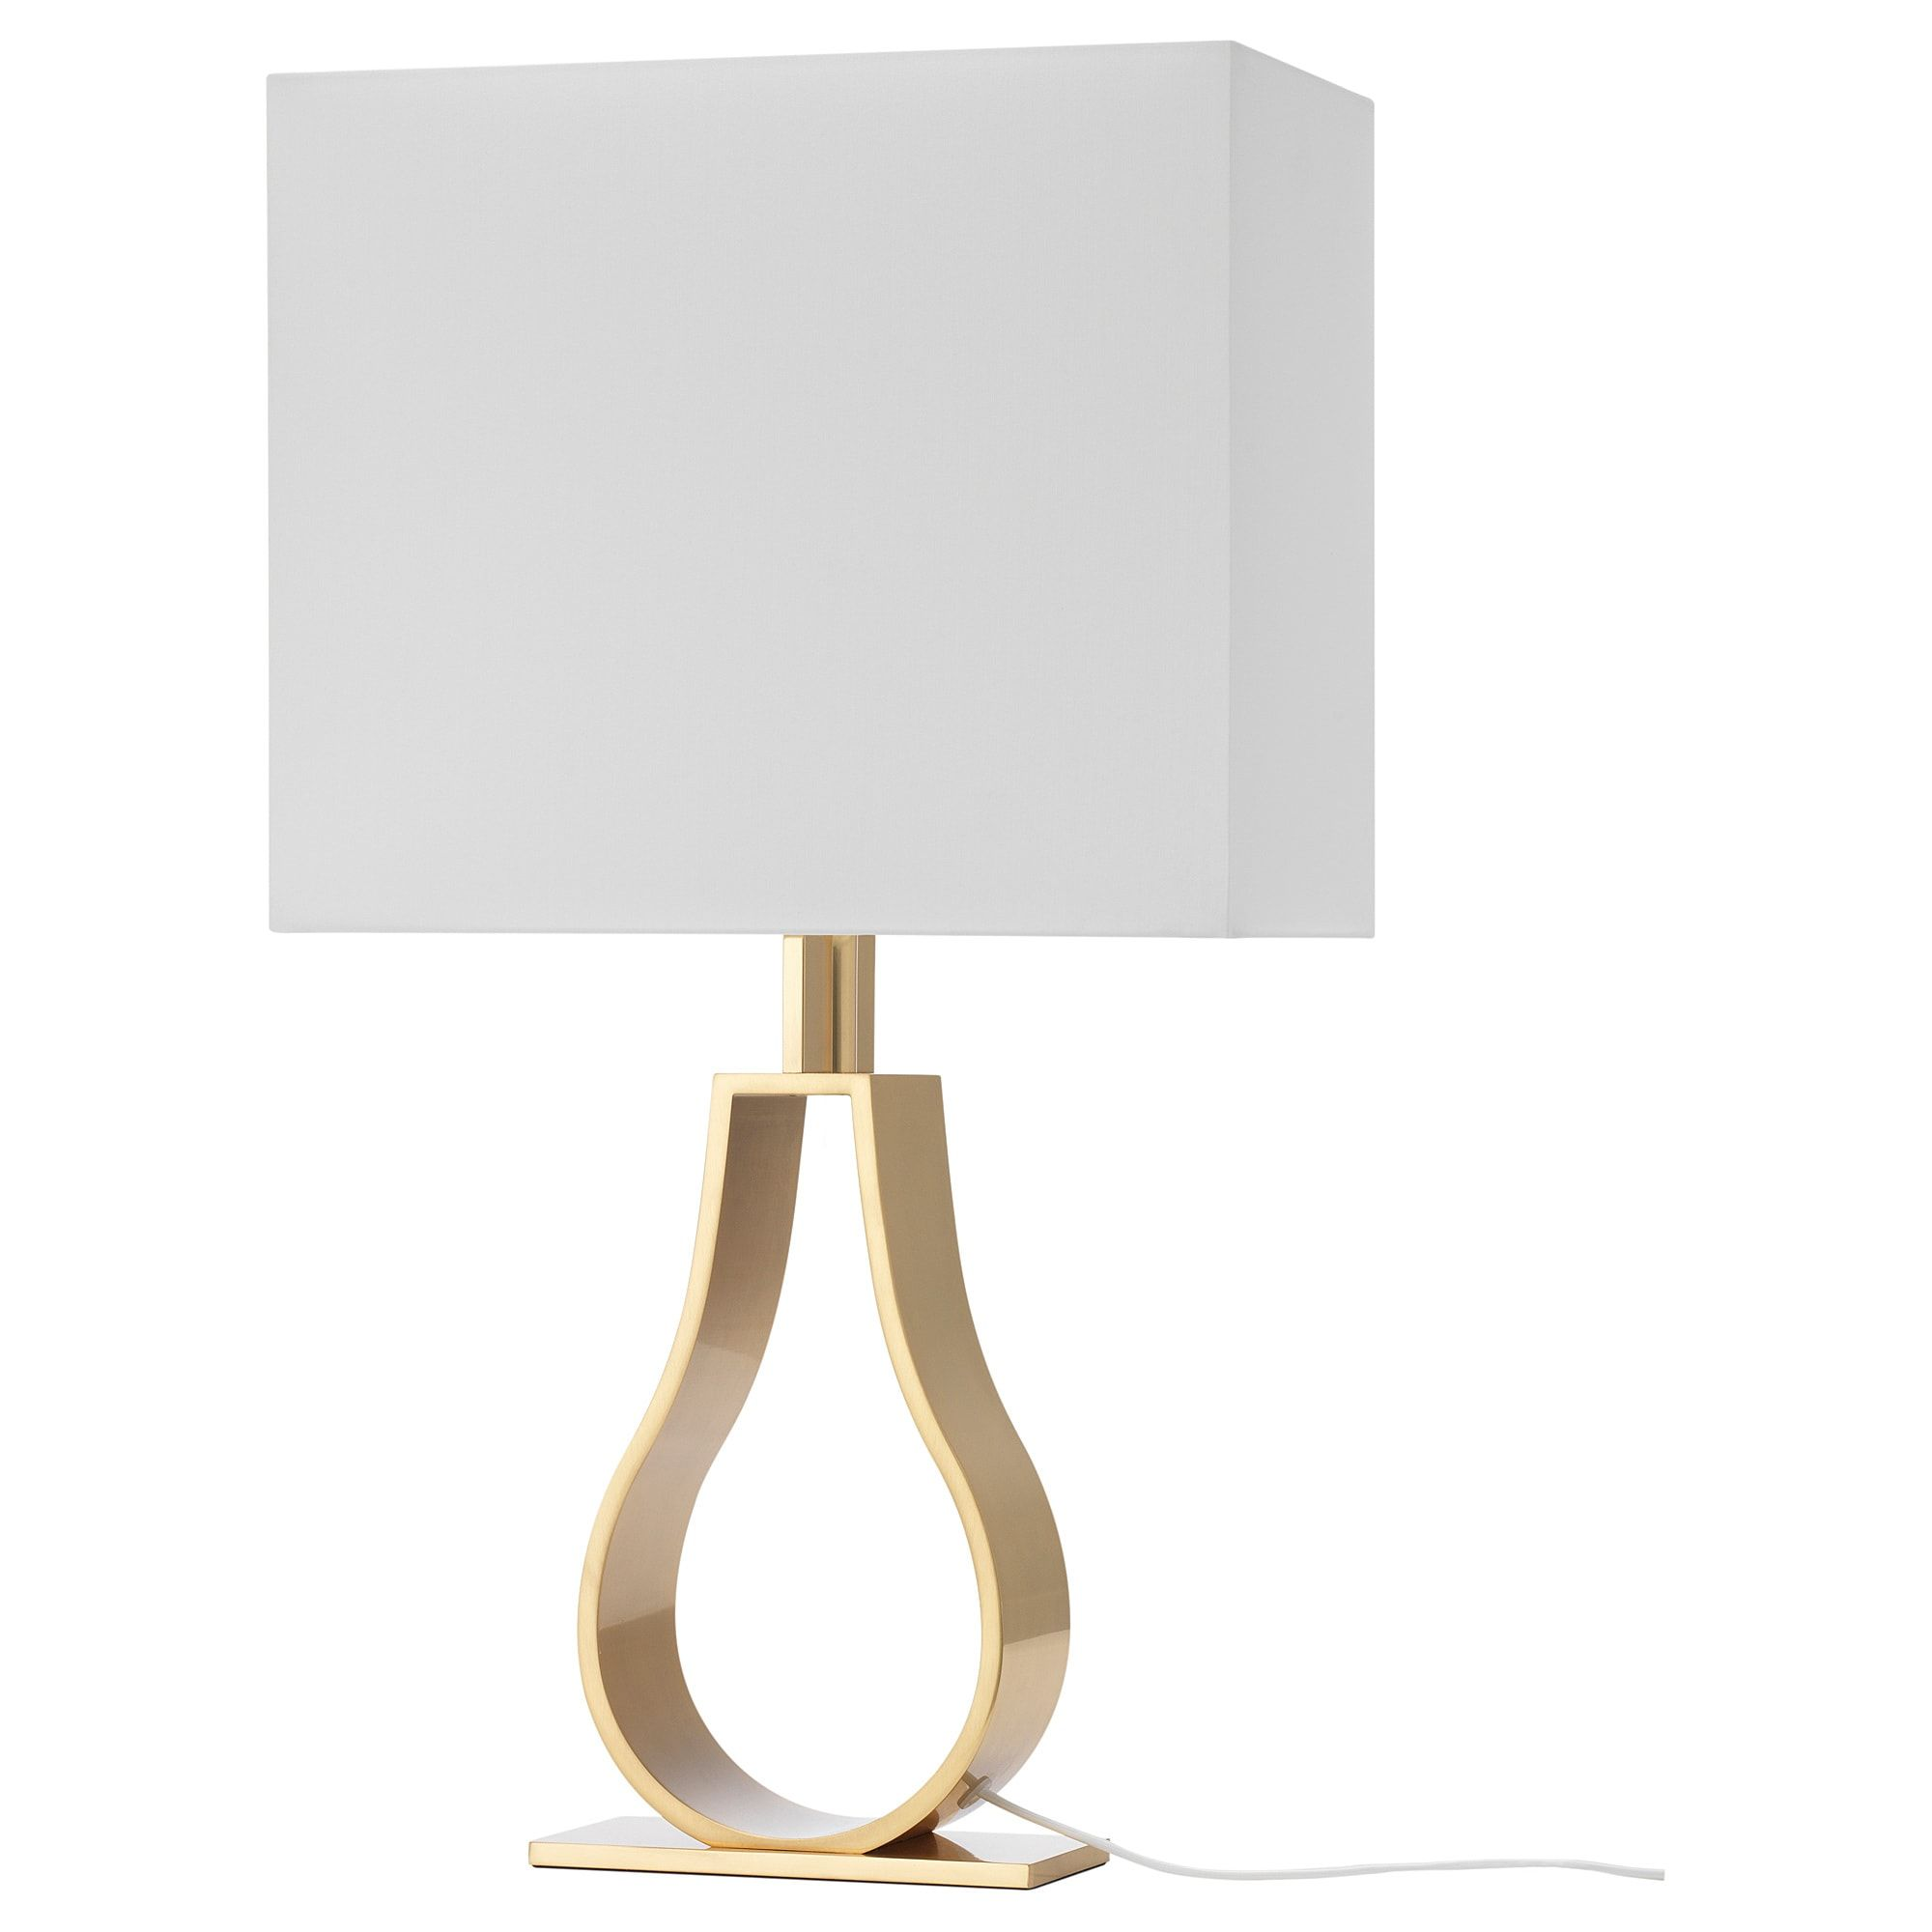 Klabb Table Lamp With Led Bulb Off White Brass Color Height 17 Ikea Table Lamp Lamp Led Bulb